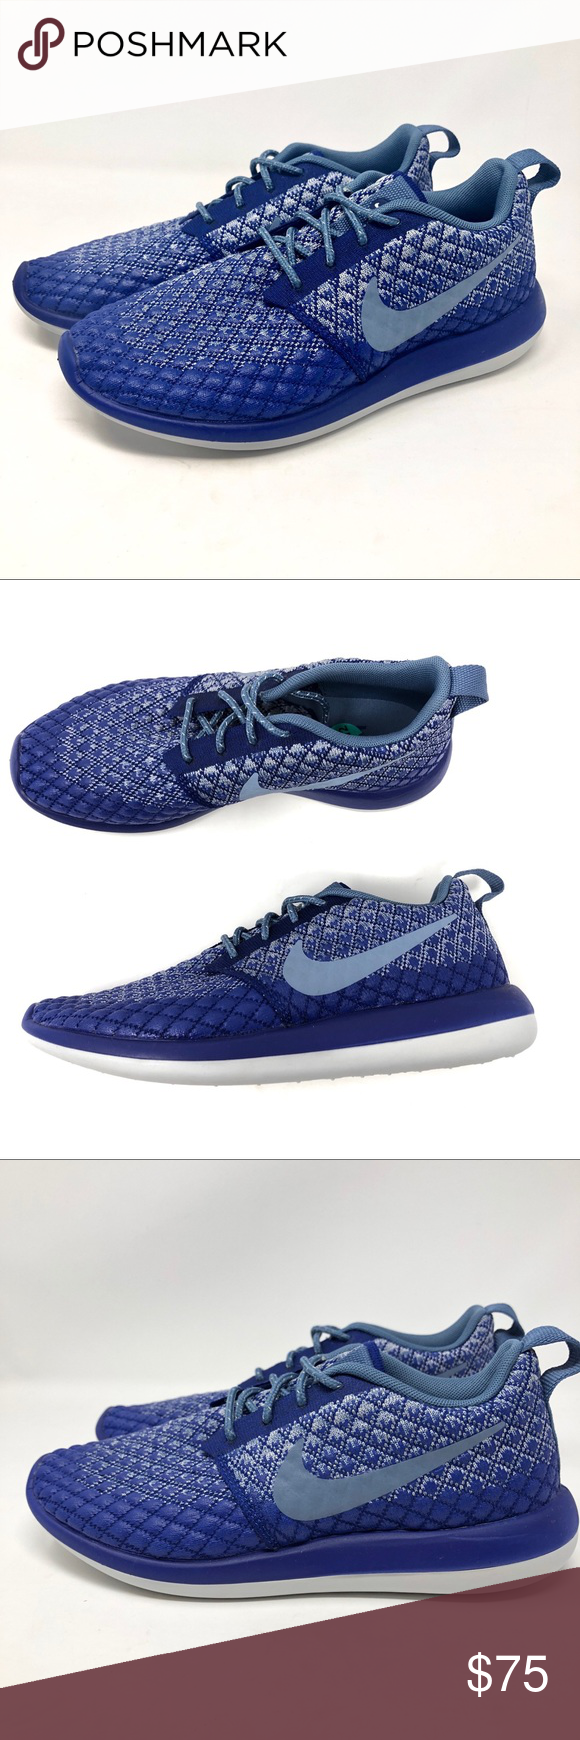 low priced 0c8e5 89a2d Nike Roshe Two Flyknit 365 Running Shoe 861706 400 New without box Nike  Roshe Two Flyknit 365 Women s Sz 7.5 Running Shoes Purple Style    861706-400  Nike ...